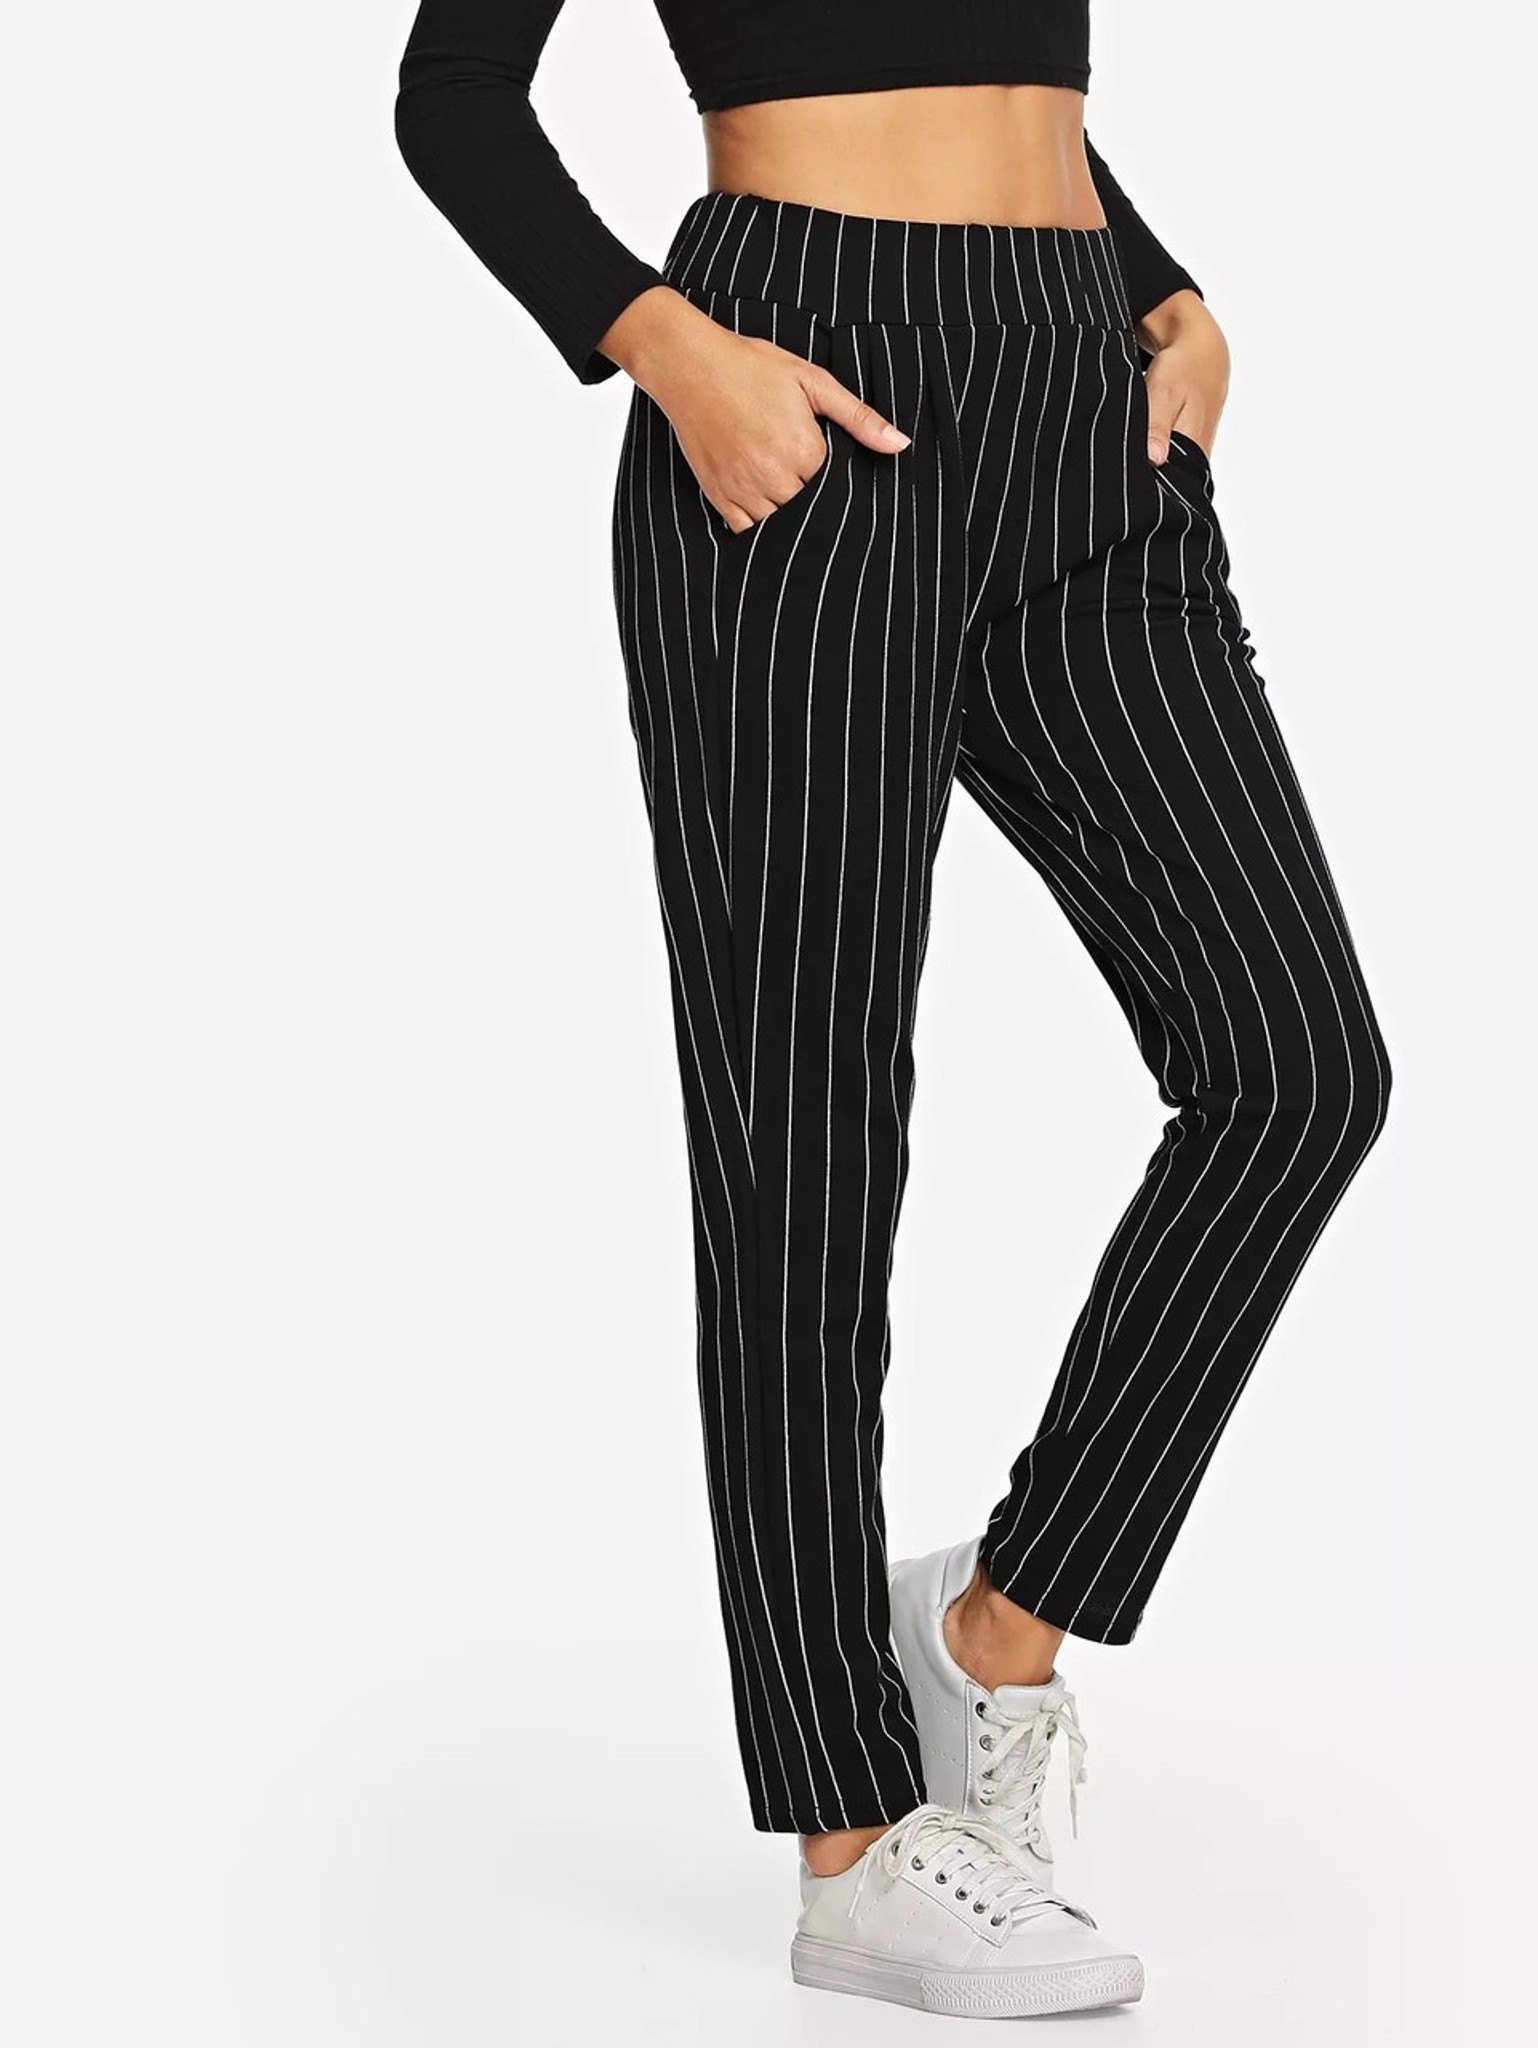 Fifth Avenue Cotton Pinstripe Print CTWP3 Elastic Waist Pants - Black